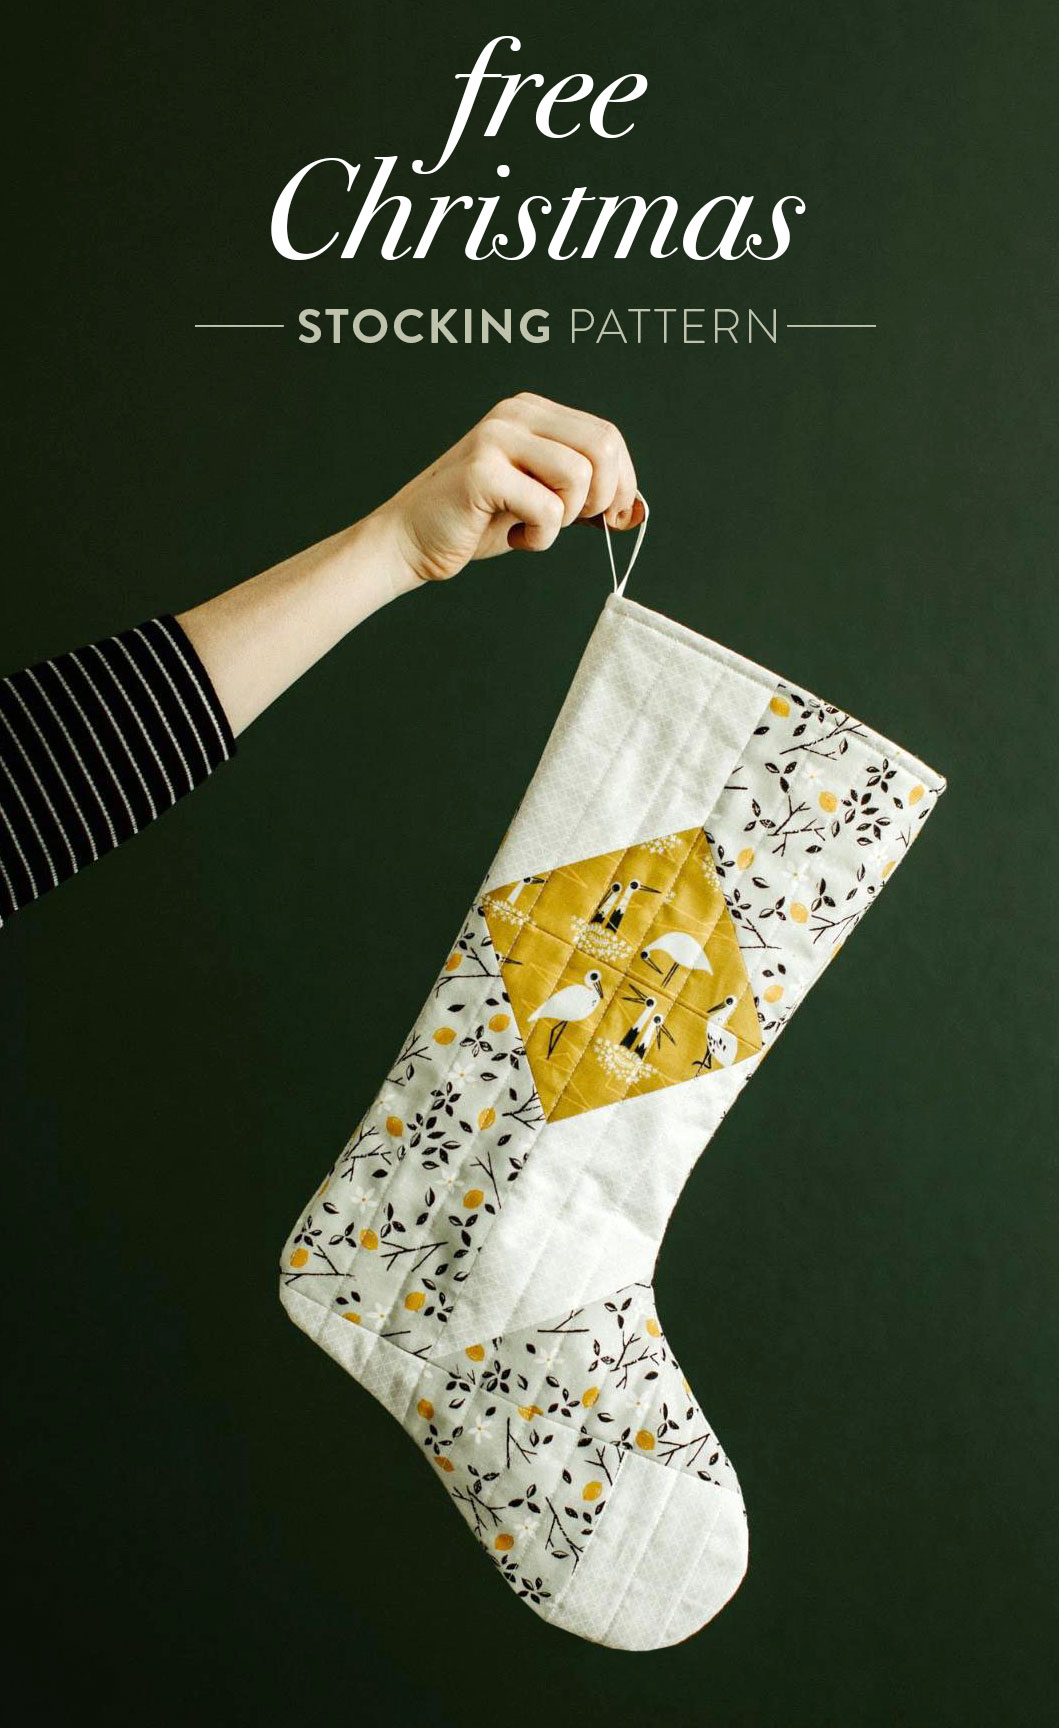 A free quilted Christmas stocking pattern right in time for the holidays! Sew a simple, modern stocking with this step by step tutorial. suzyquilts.com #christmasstocking